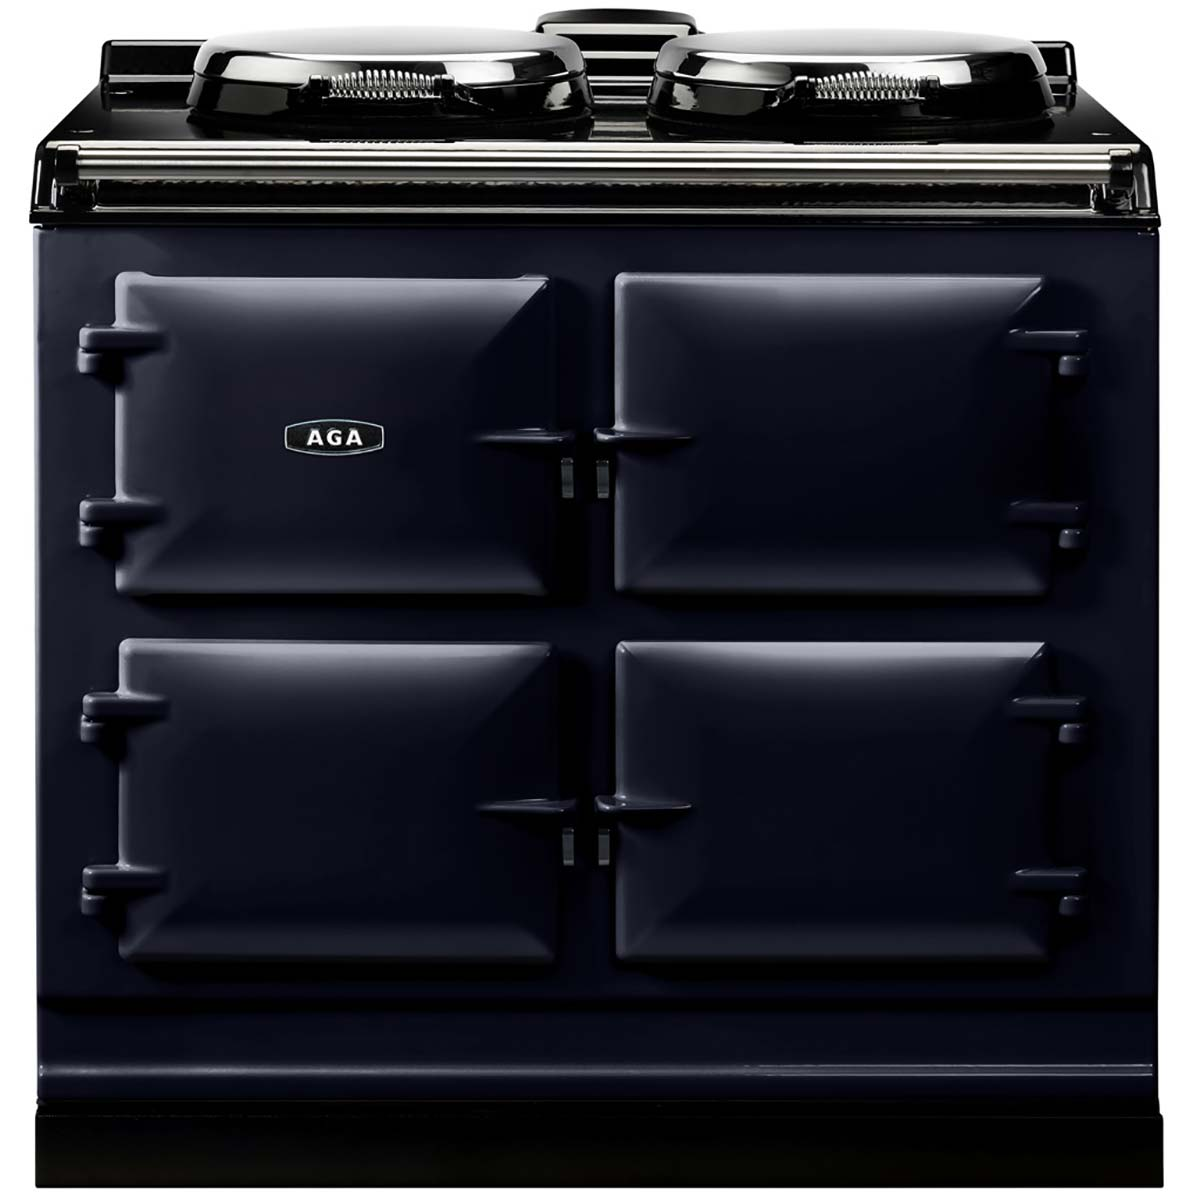 Aga AGA Dual Control 3-Oven All Electric